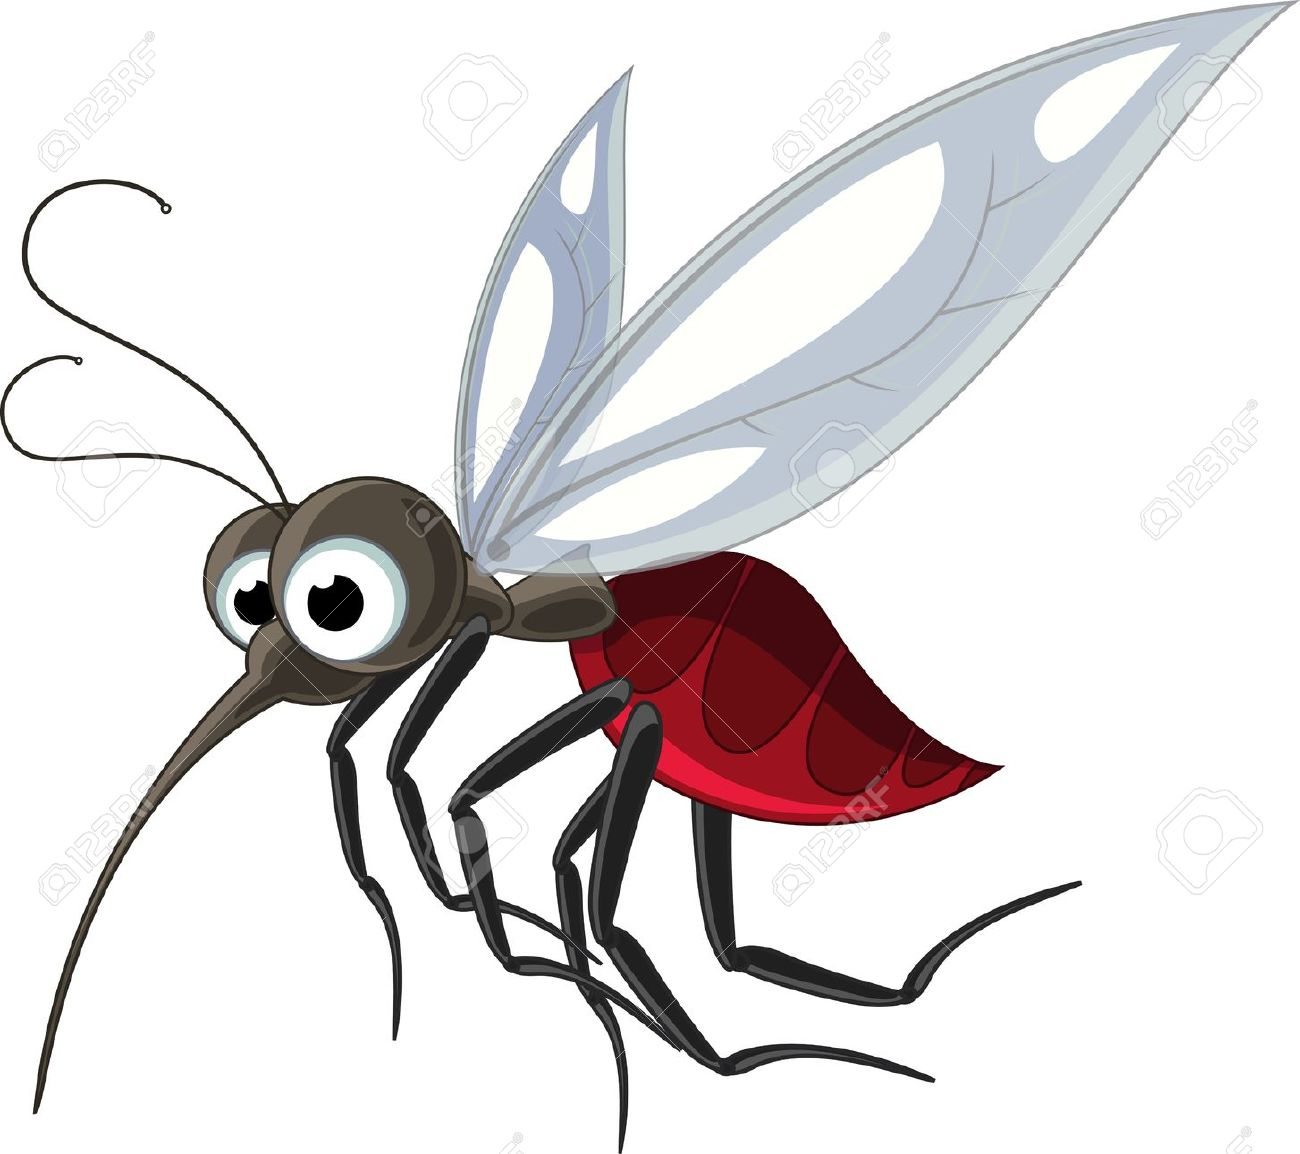 Mosquito clipart #14, Download drawings